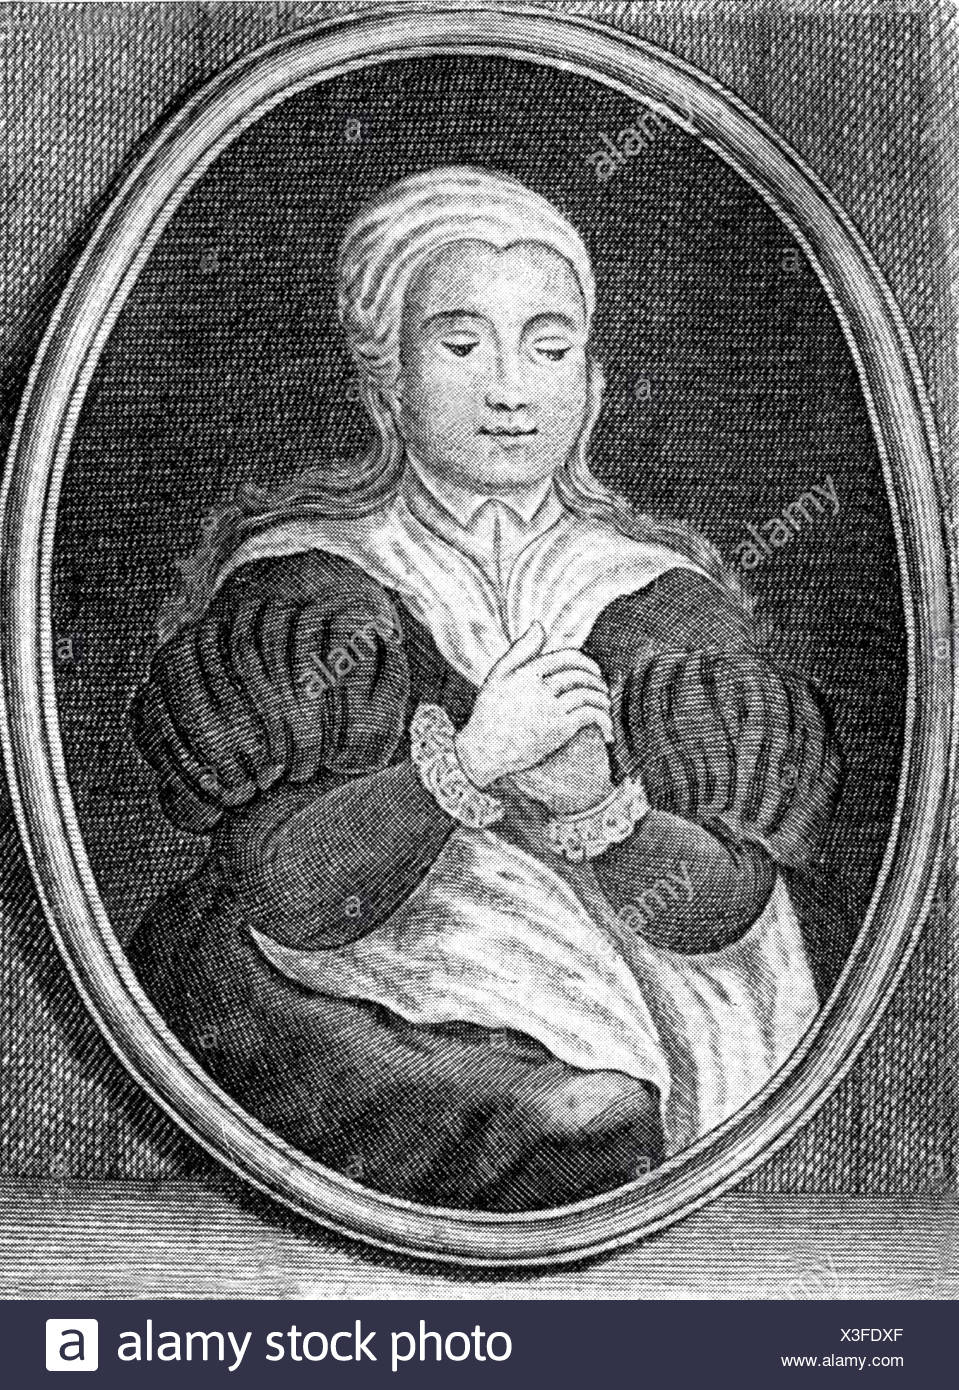 Morata, Olympia Fulvia, 1526 - 26.10.1555, German humanist of Renaissance and baroque period, half length, wood engraving after contemporary copper engraving, Artist's Copyright has not to be cleared - Stock Image